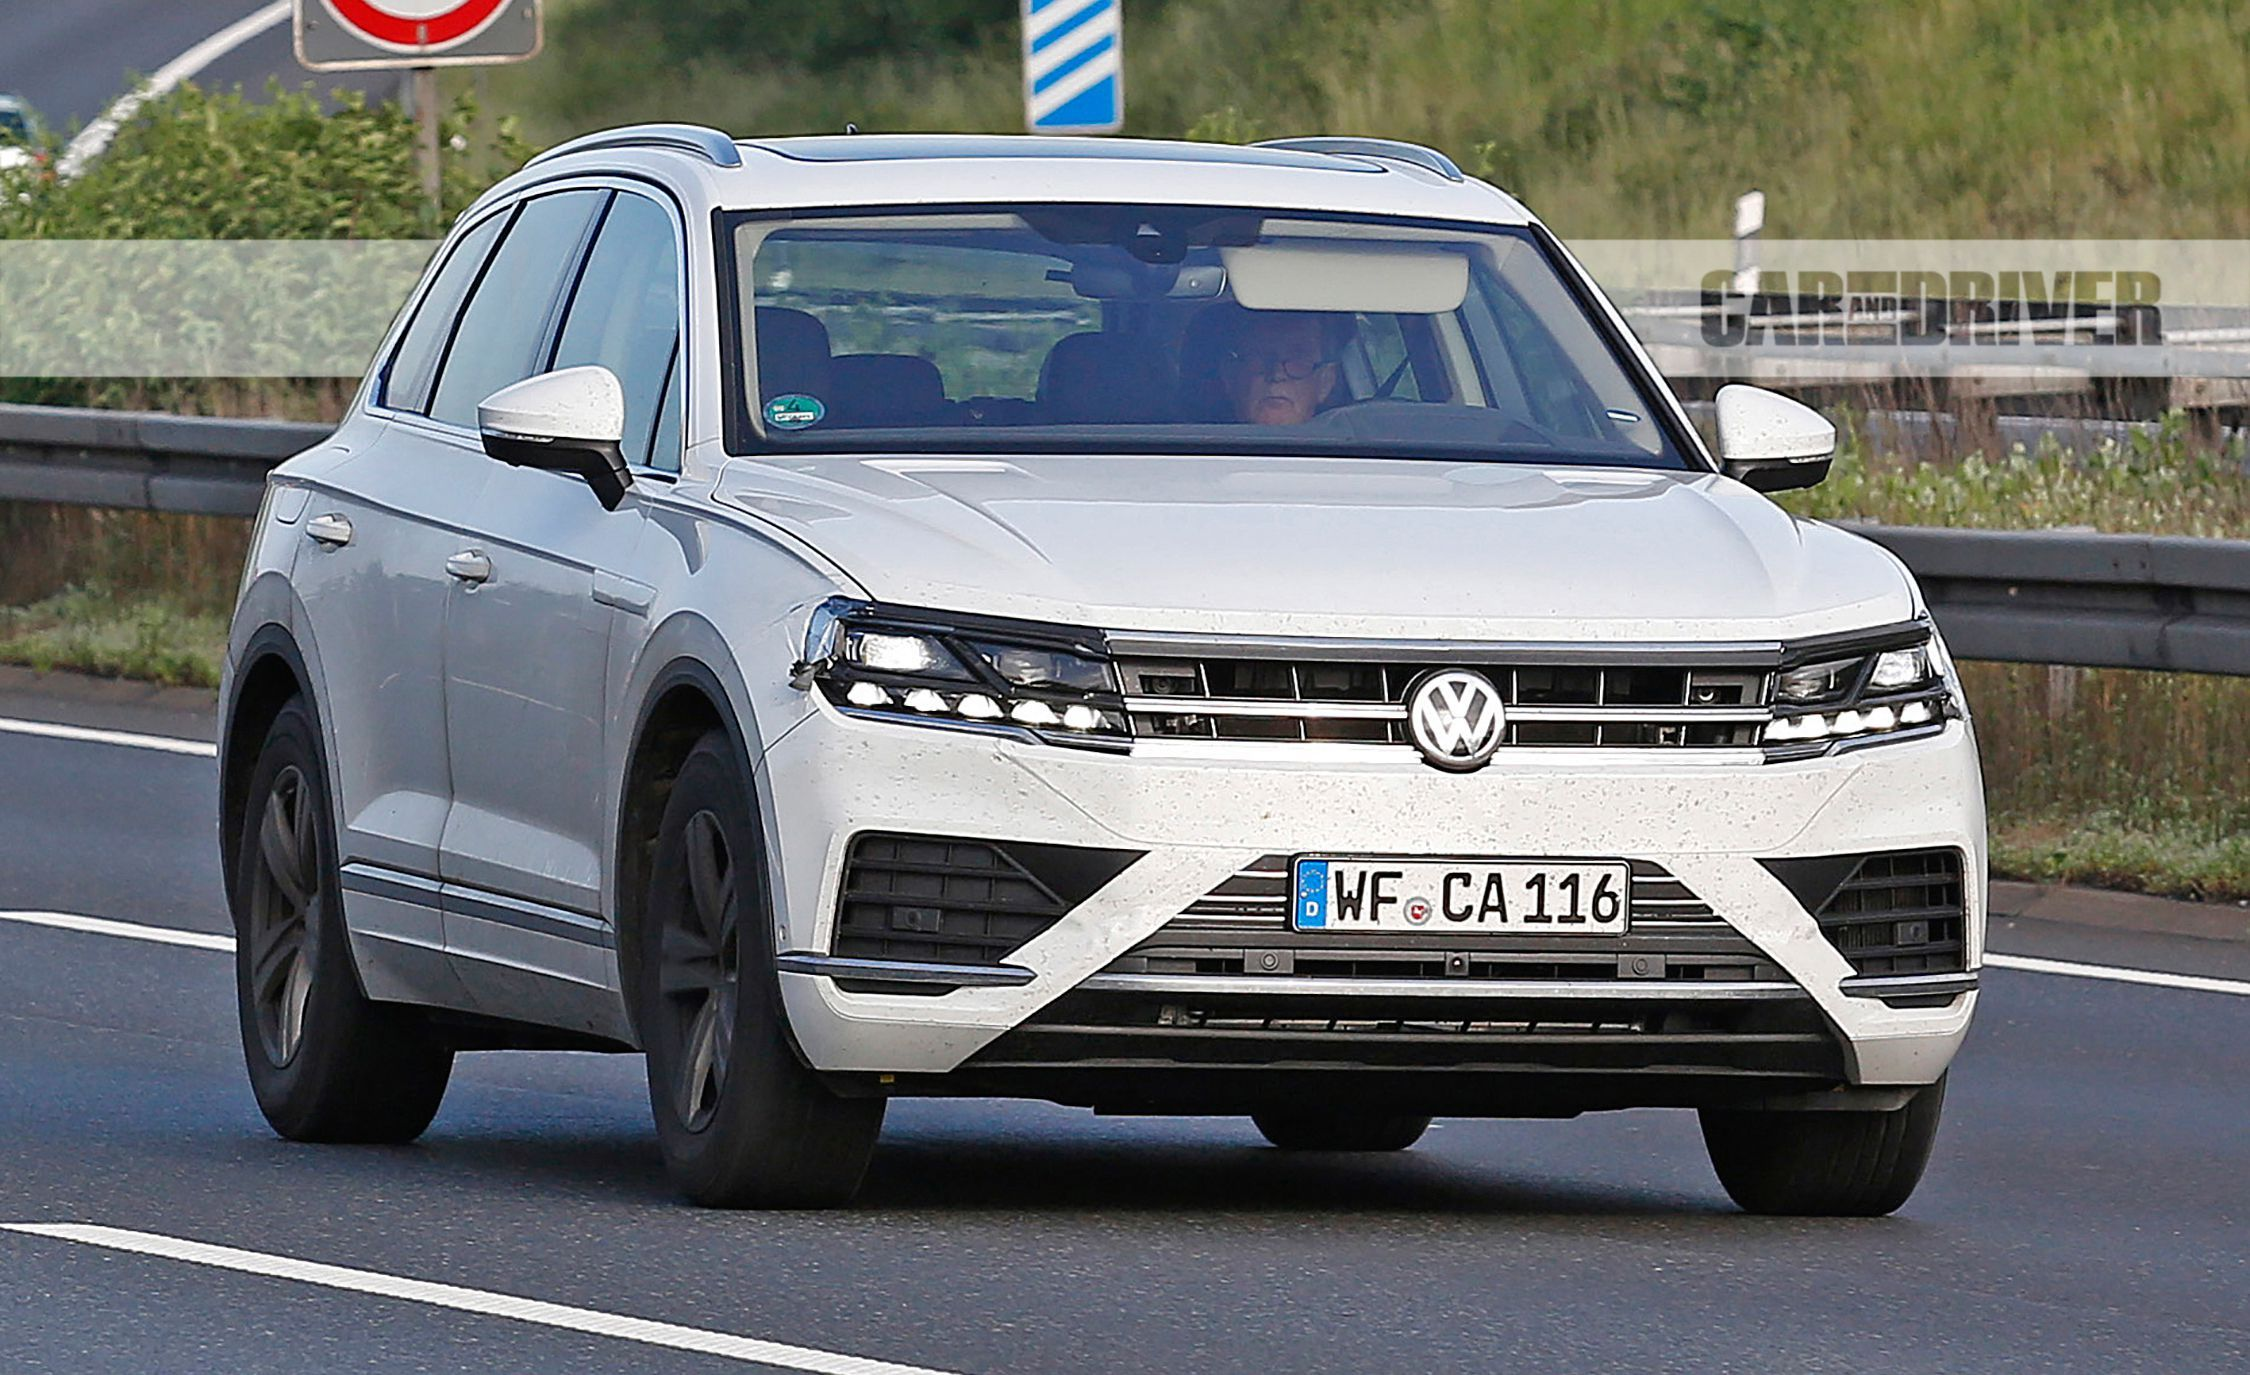 2019 Volkswagen Touareg Looking For Latest Information About Redesign Release Date Price And Specifications For It Visit Volkswagen Touareg Volkswagen Car